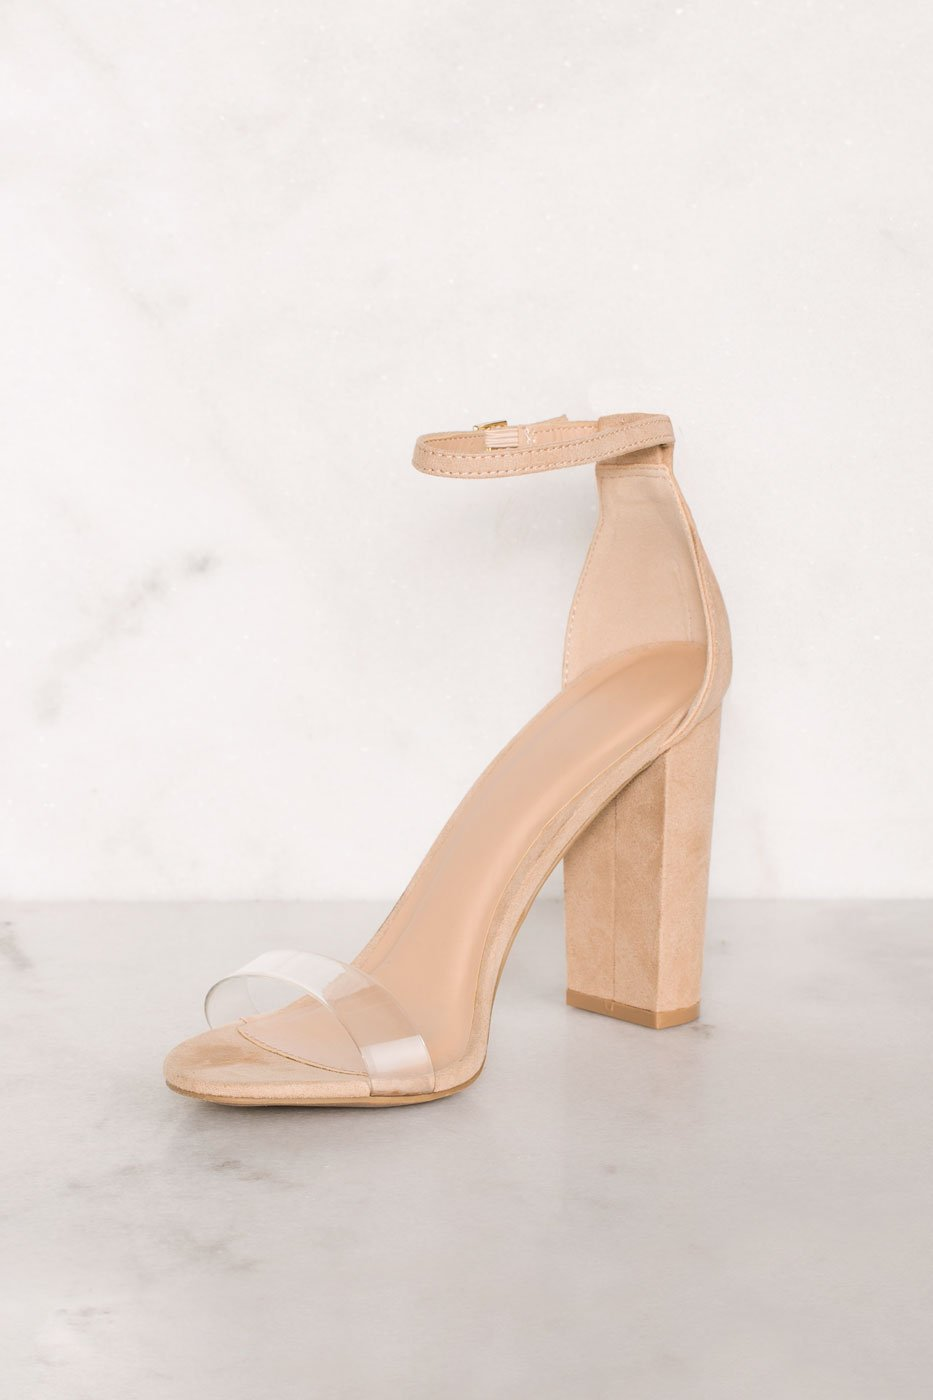 f0b46f2ec65 Shoes - Cynthia Nude Vegan Suede Ankle Strap Heels - Nude ...